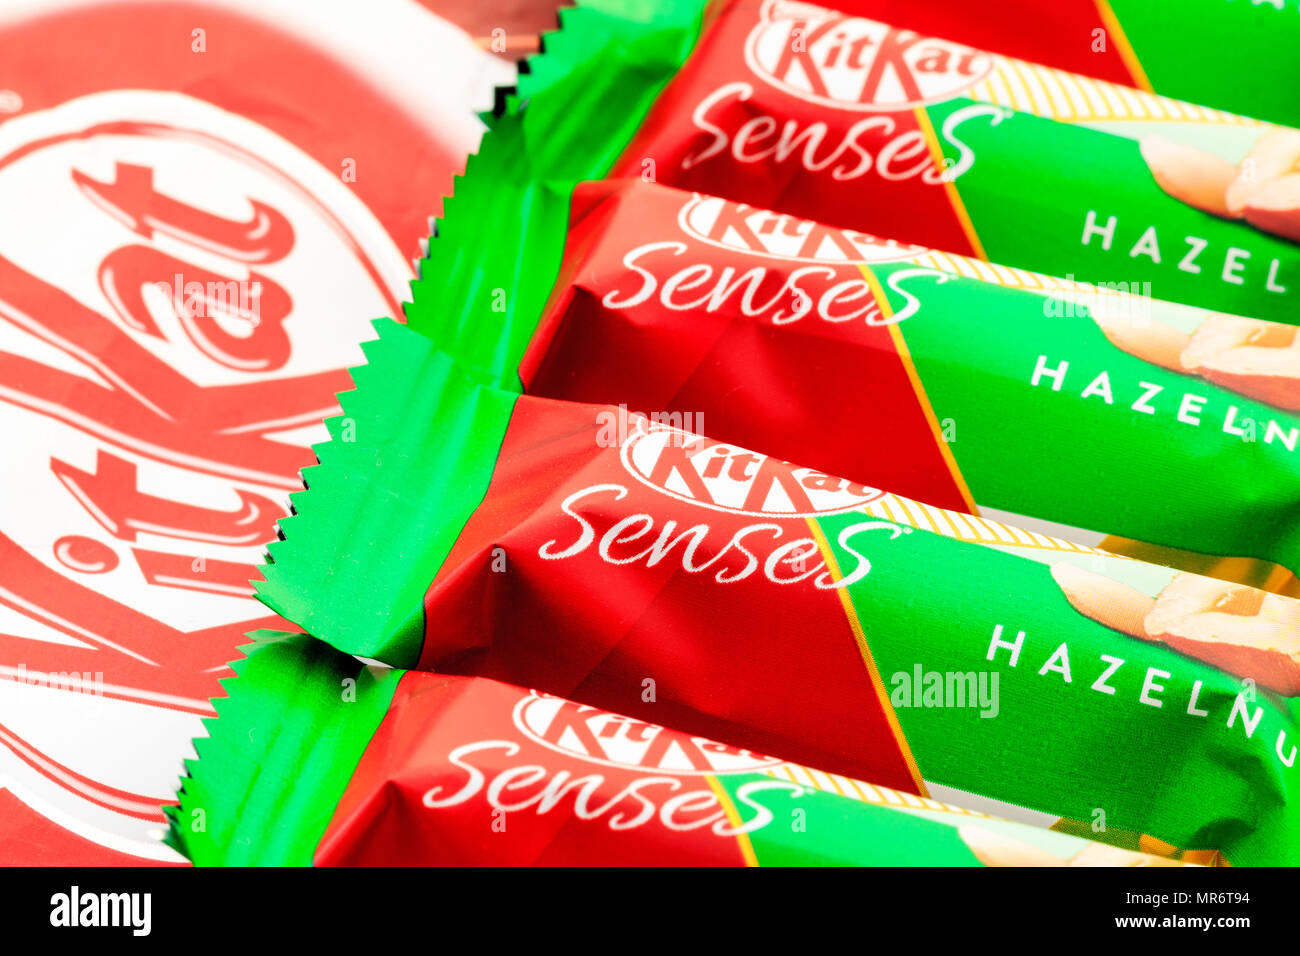 English Kitkat Senses Hazelnut packets lines up with a larger kitkat logo underneath and to the side. - Stock Image